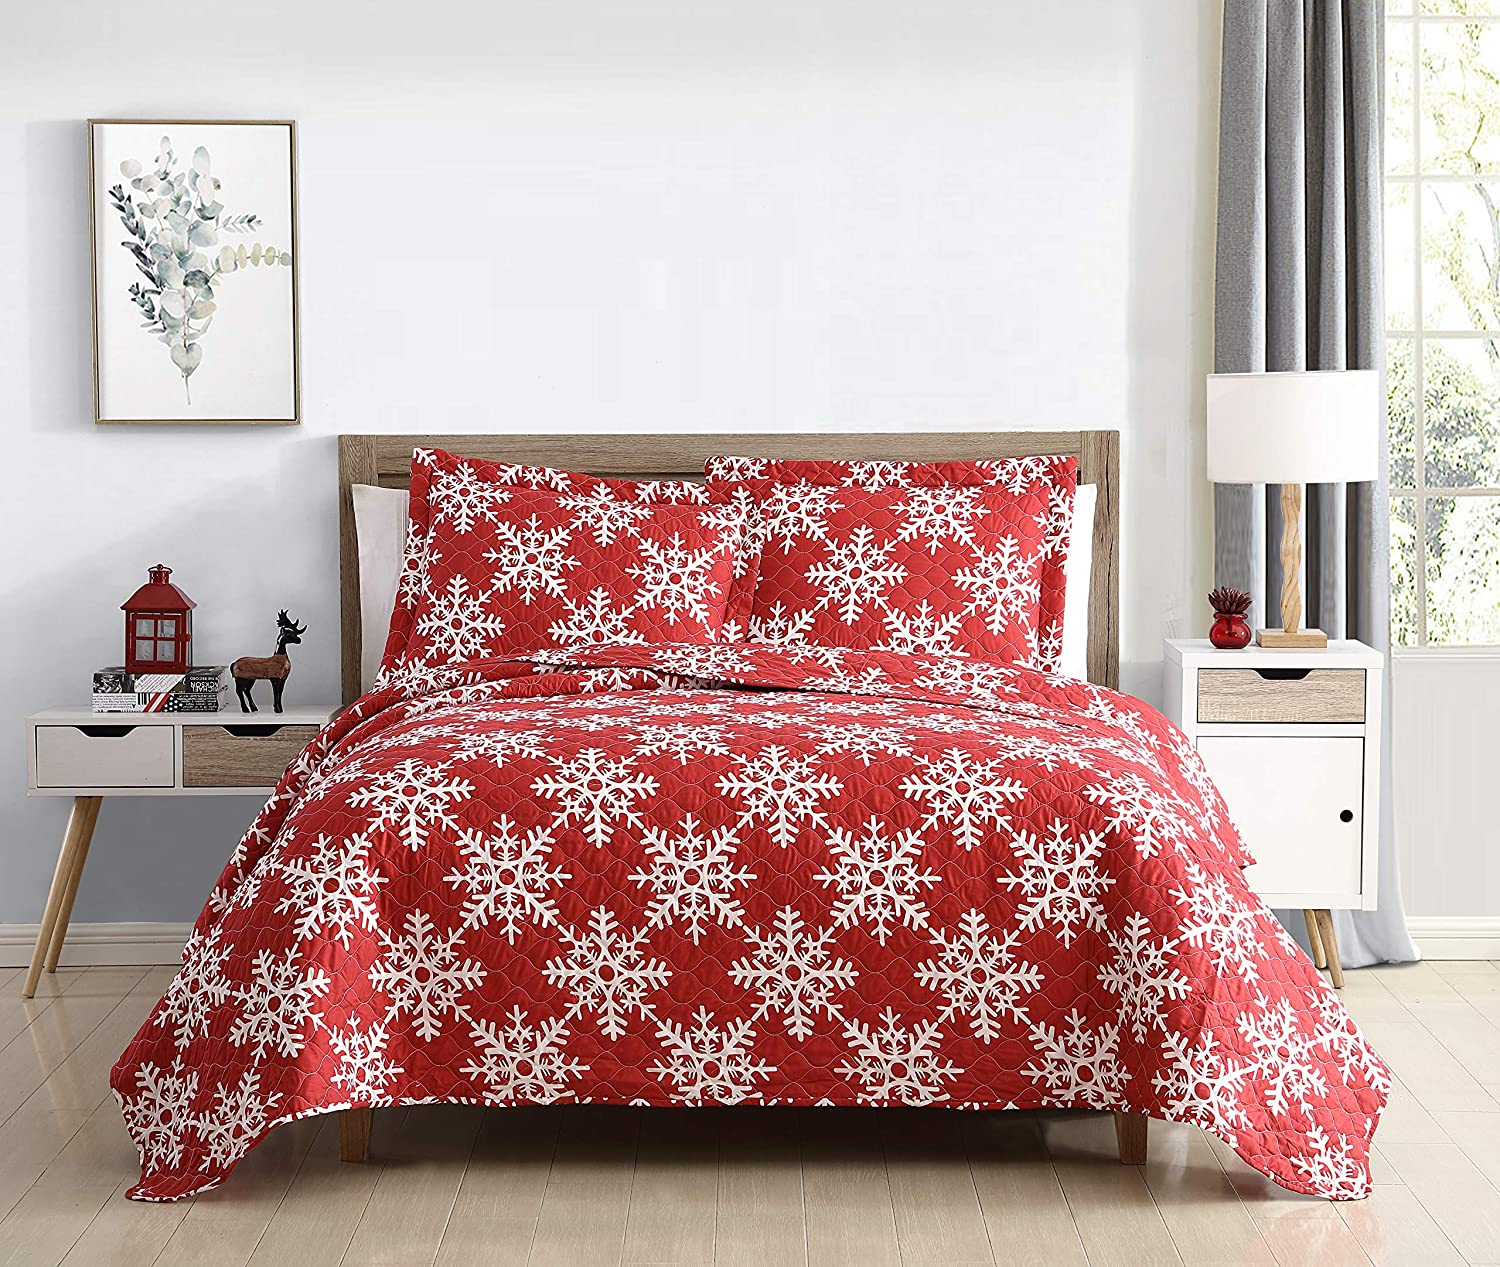 SL Spirit Linen Home EST. 1988 Holiday Collection Quilt Set - Ultra-Soft, Reversible Coverlet Bedding - Oversized Quilt with Matching Pillow Shams, Queen, Snowflakes